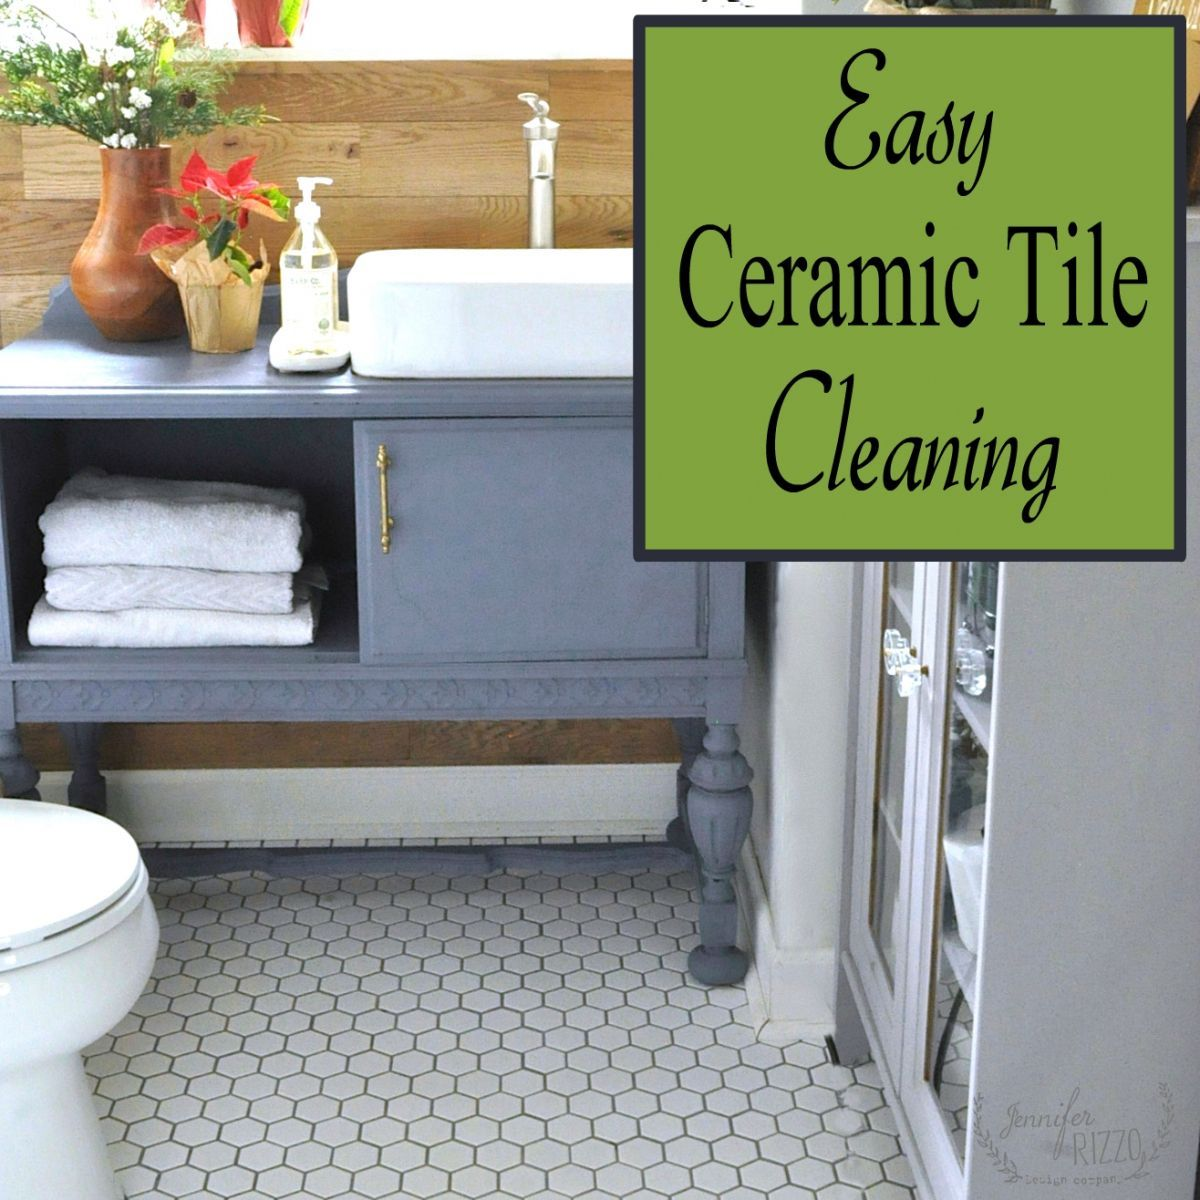 Discover the easy way to clean your ceramic tile with the